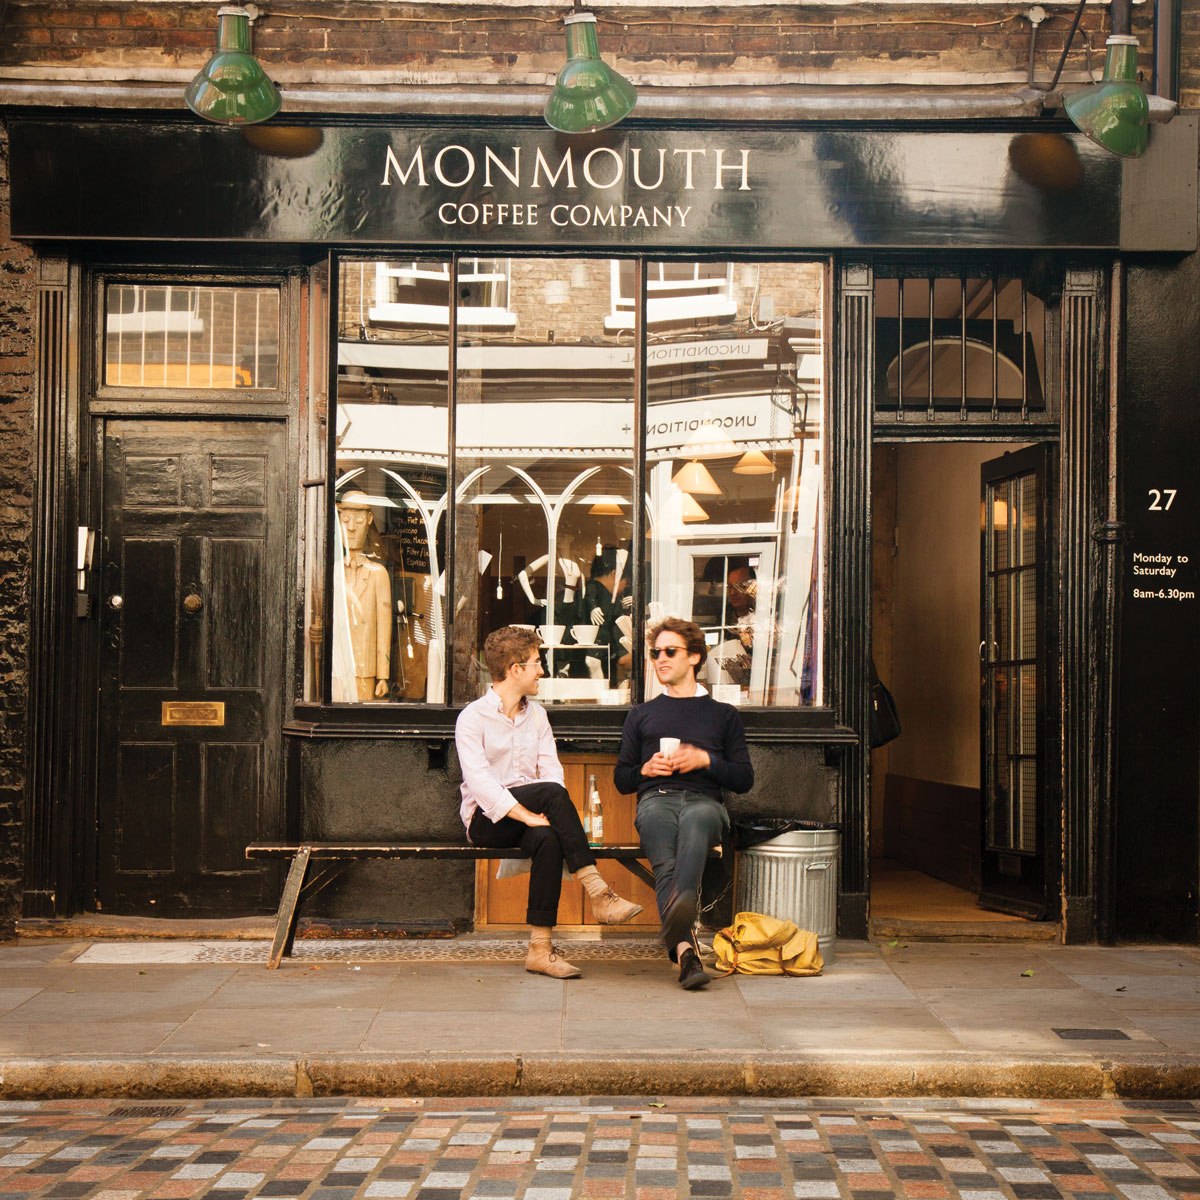 Monmouth's Café in Covent Garden. While the café serves excellent espresso drinks, the main business is selling bags of whole beans. (Photo: courtesy Monmouth Coffee Company.)